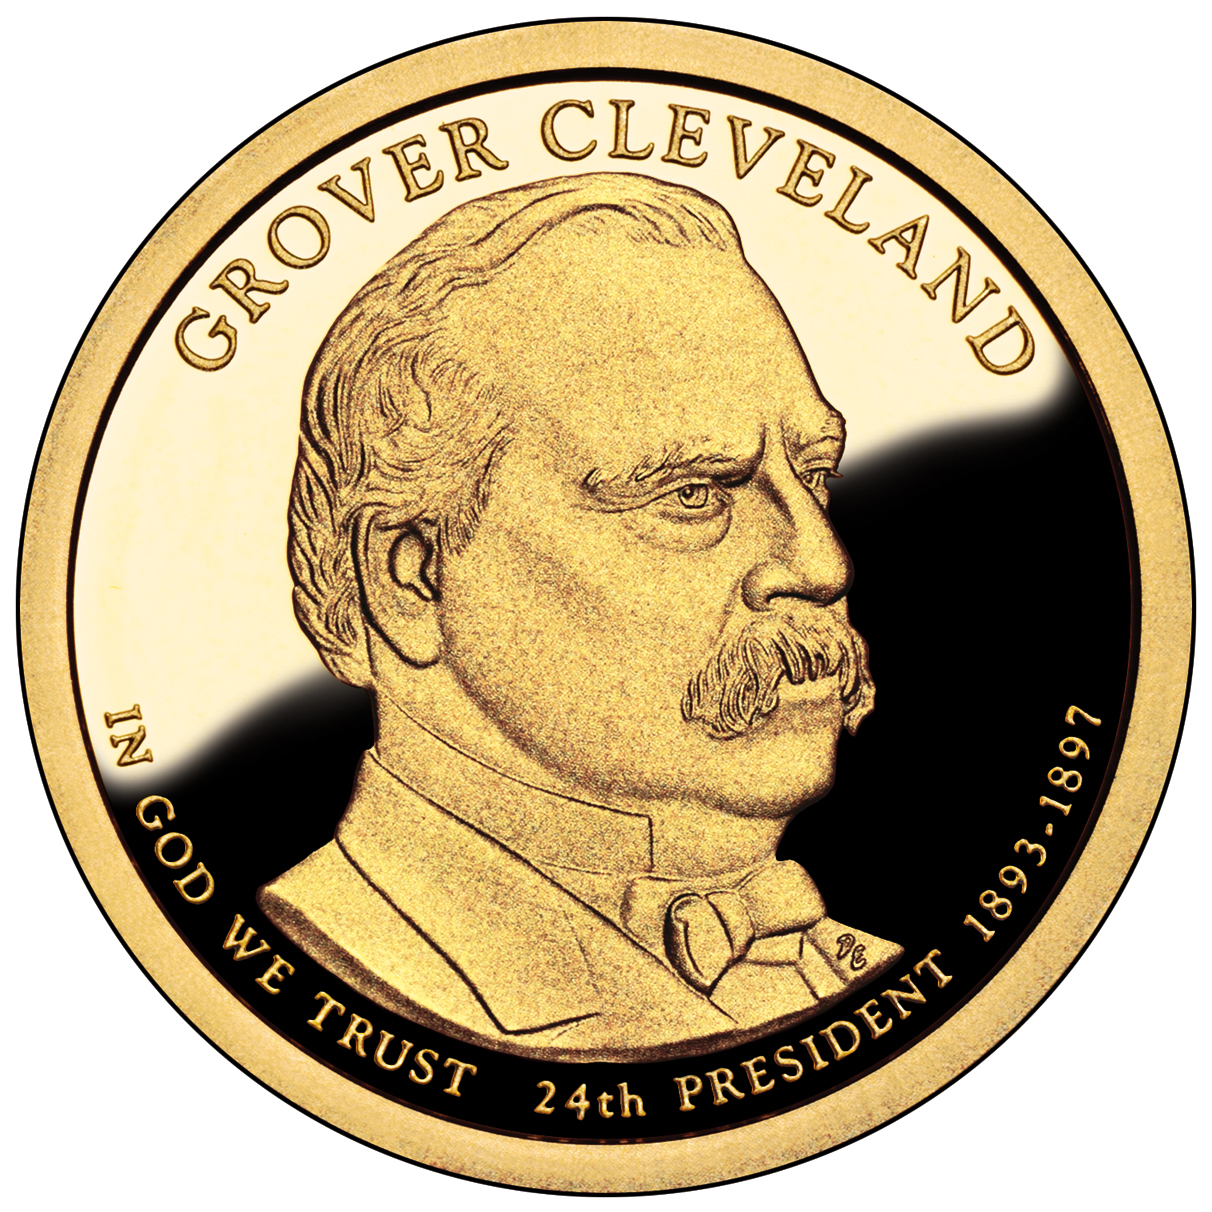 2012 Presidential Dollar Coin Grover Cleveland Second Term Proof Obverse